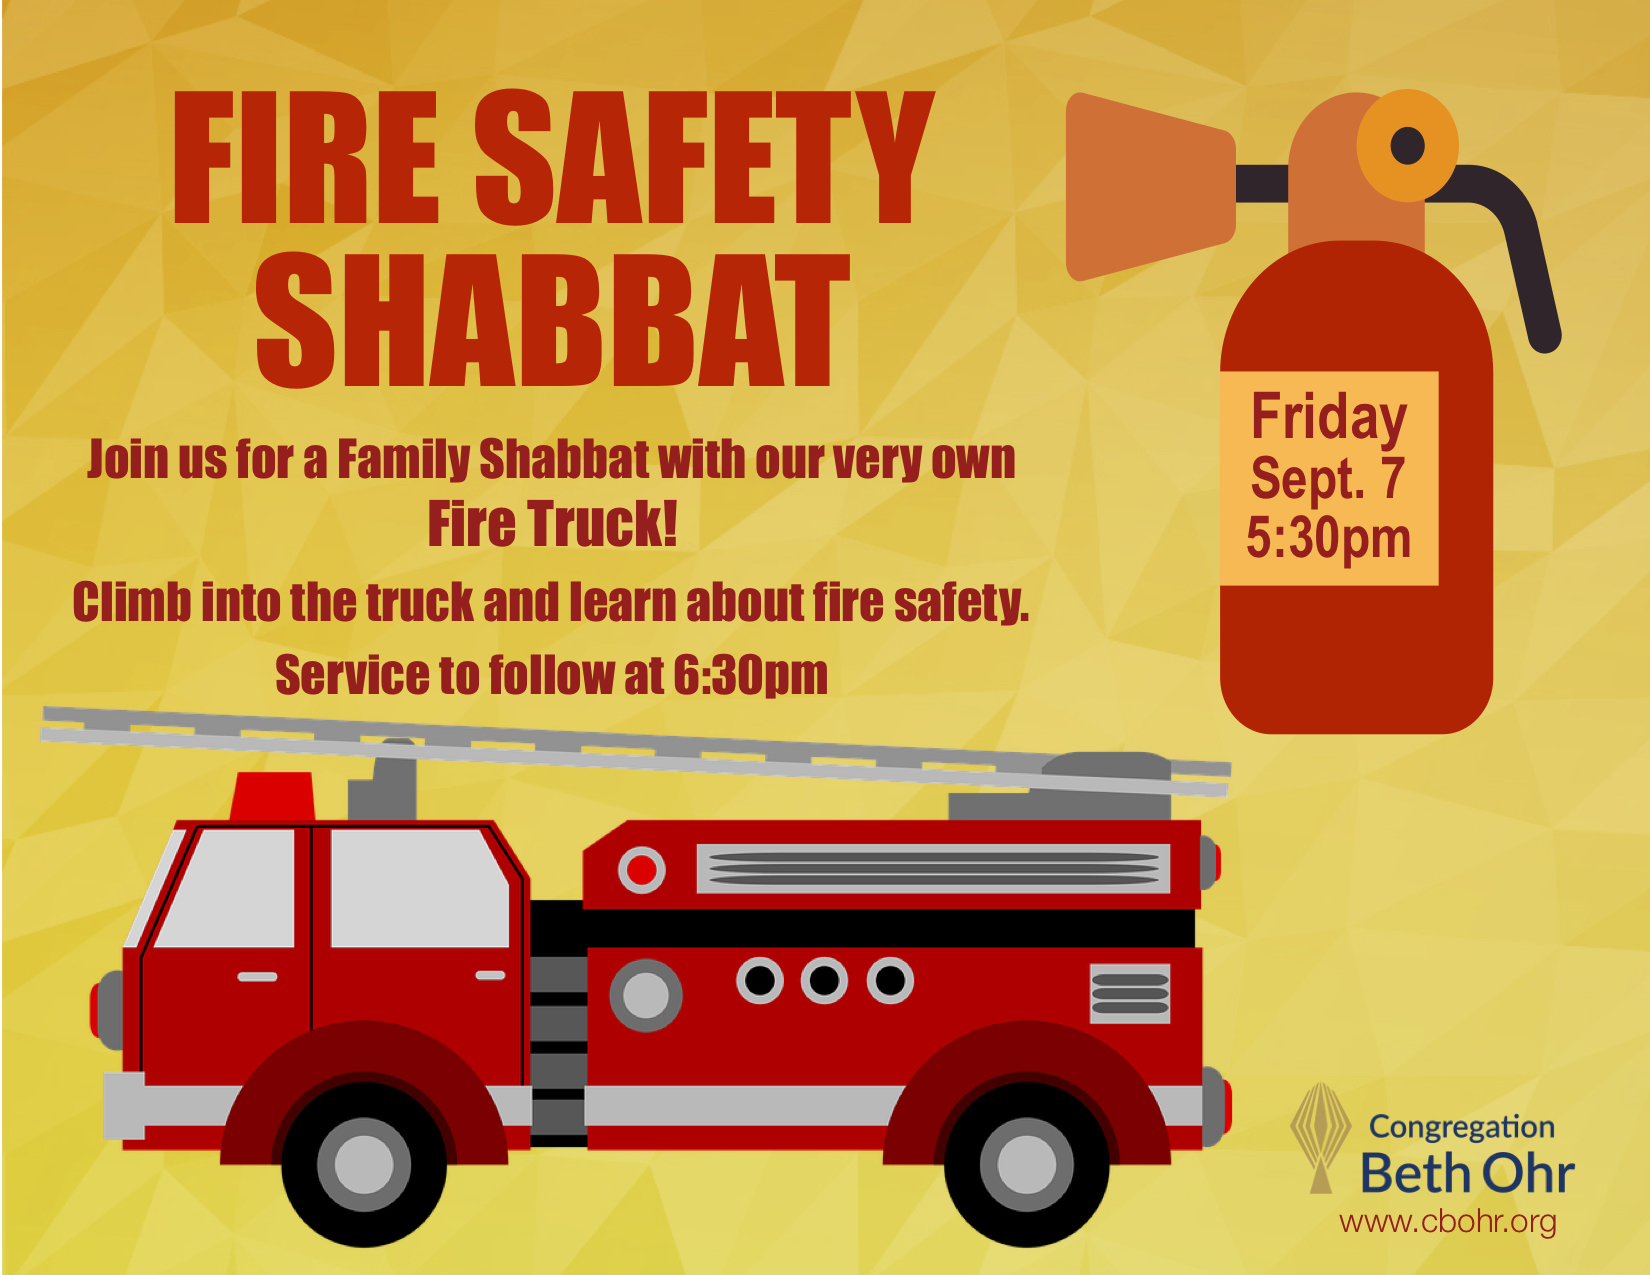 Fire Safety Shabbat